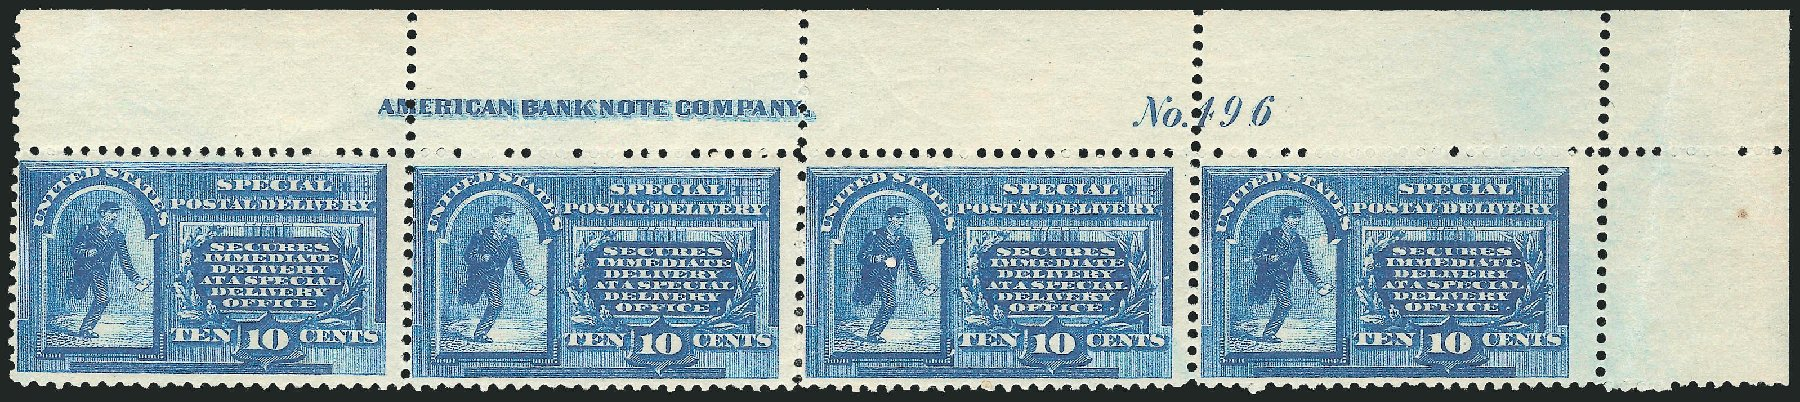 US Stamp Prices Scott Catalogue #E1 - 1885 10c Special Delivery. Robert Siegel Auction Galleries, Dec 2014, Sale 1090, Lot 1621